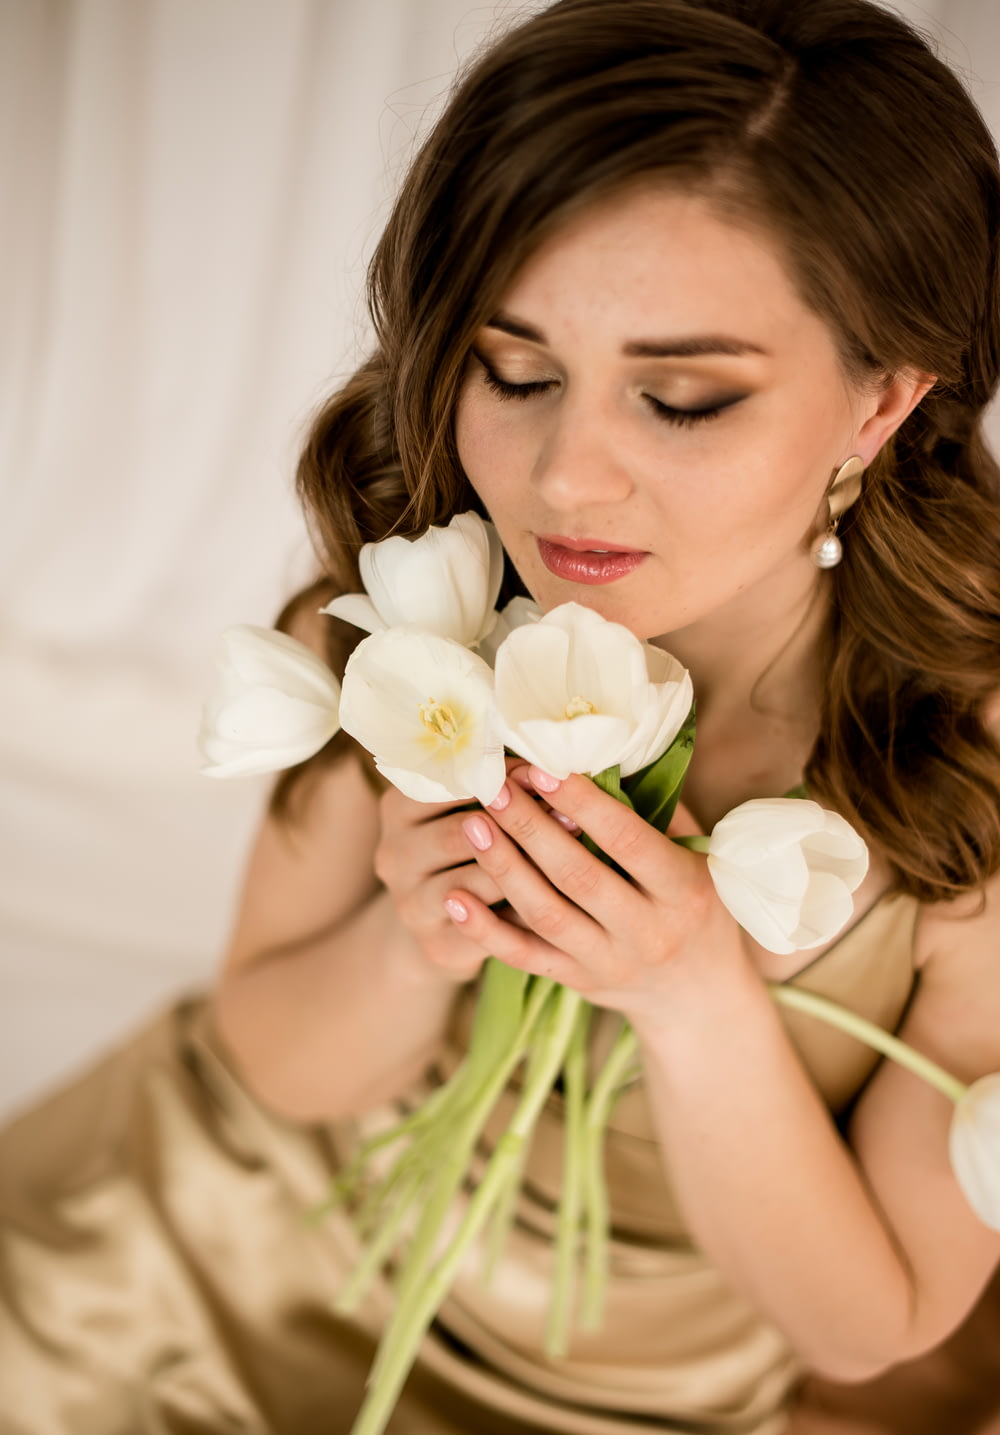 woman in white tank top holding white flowers